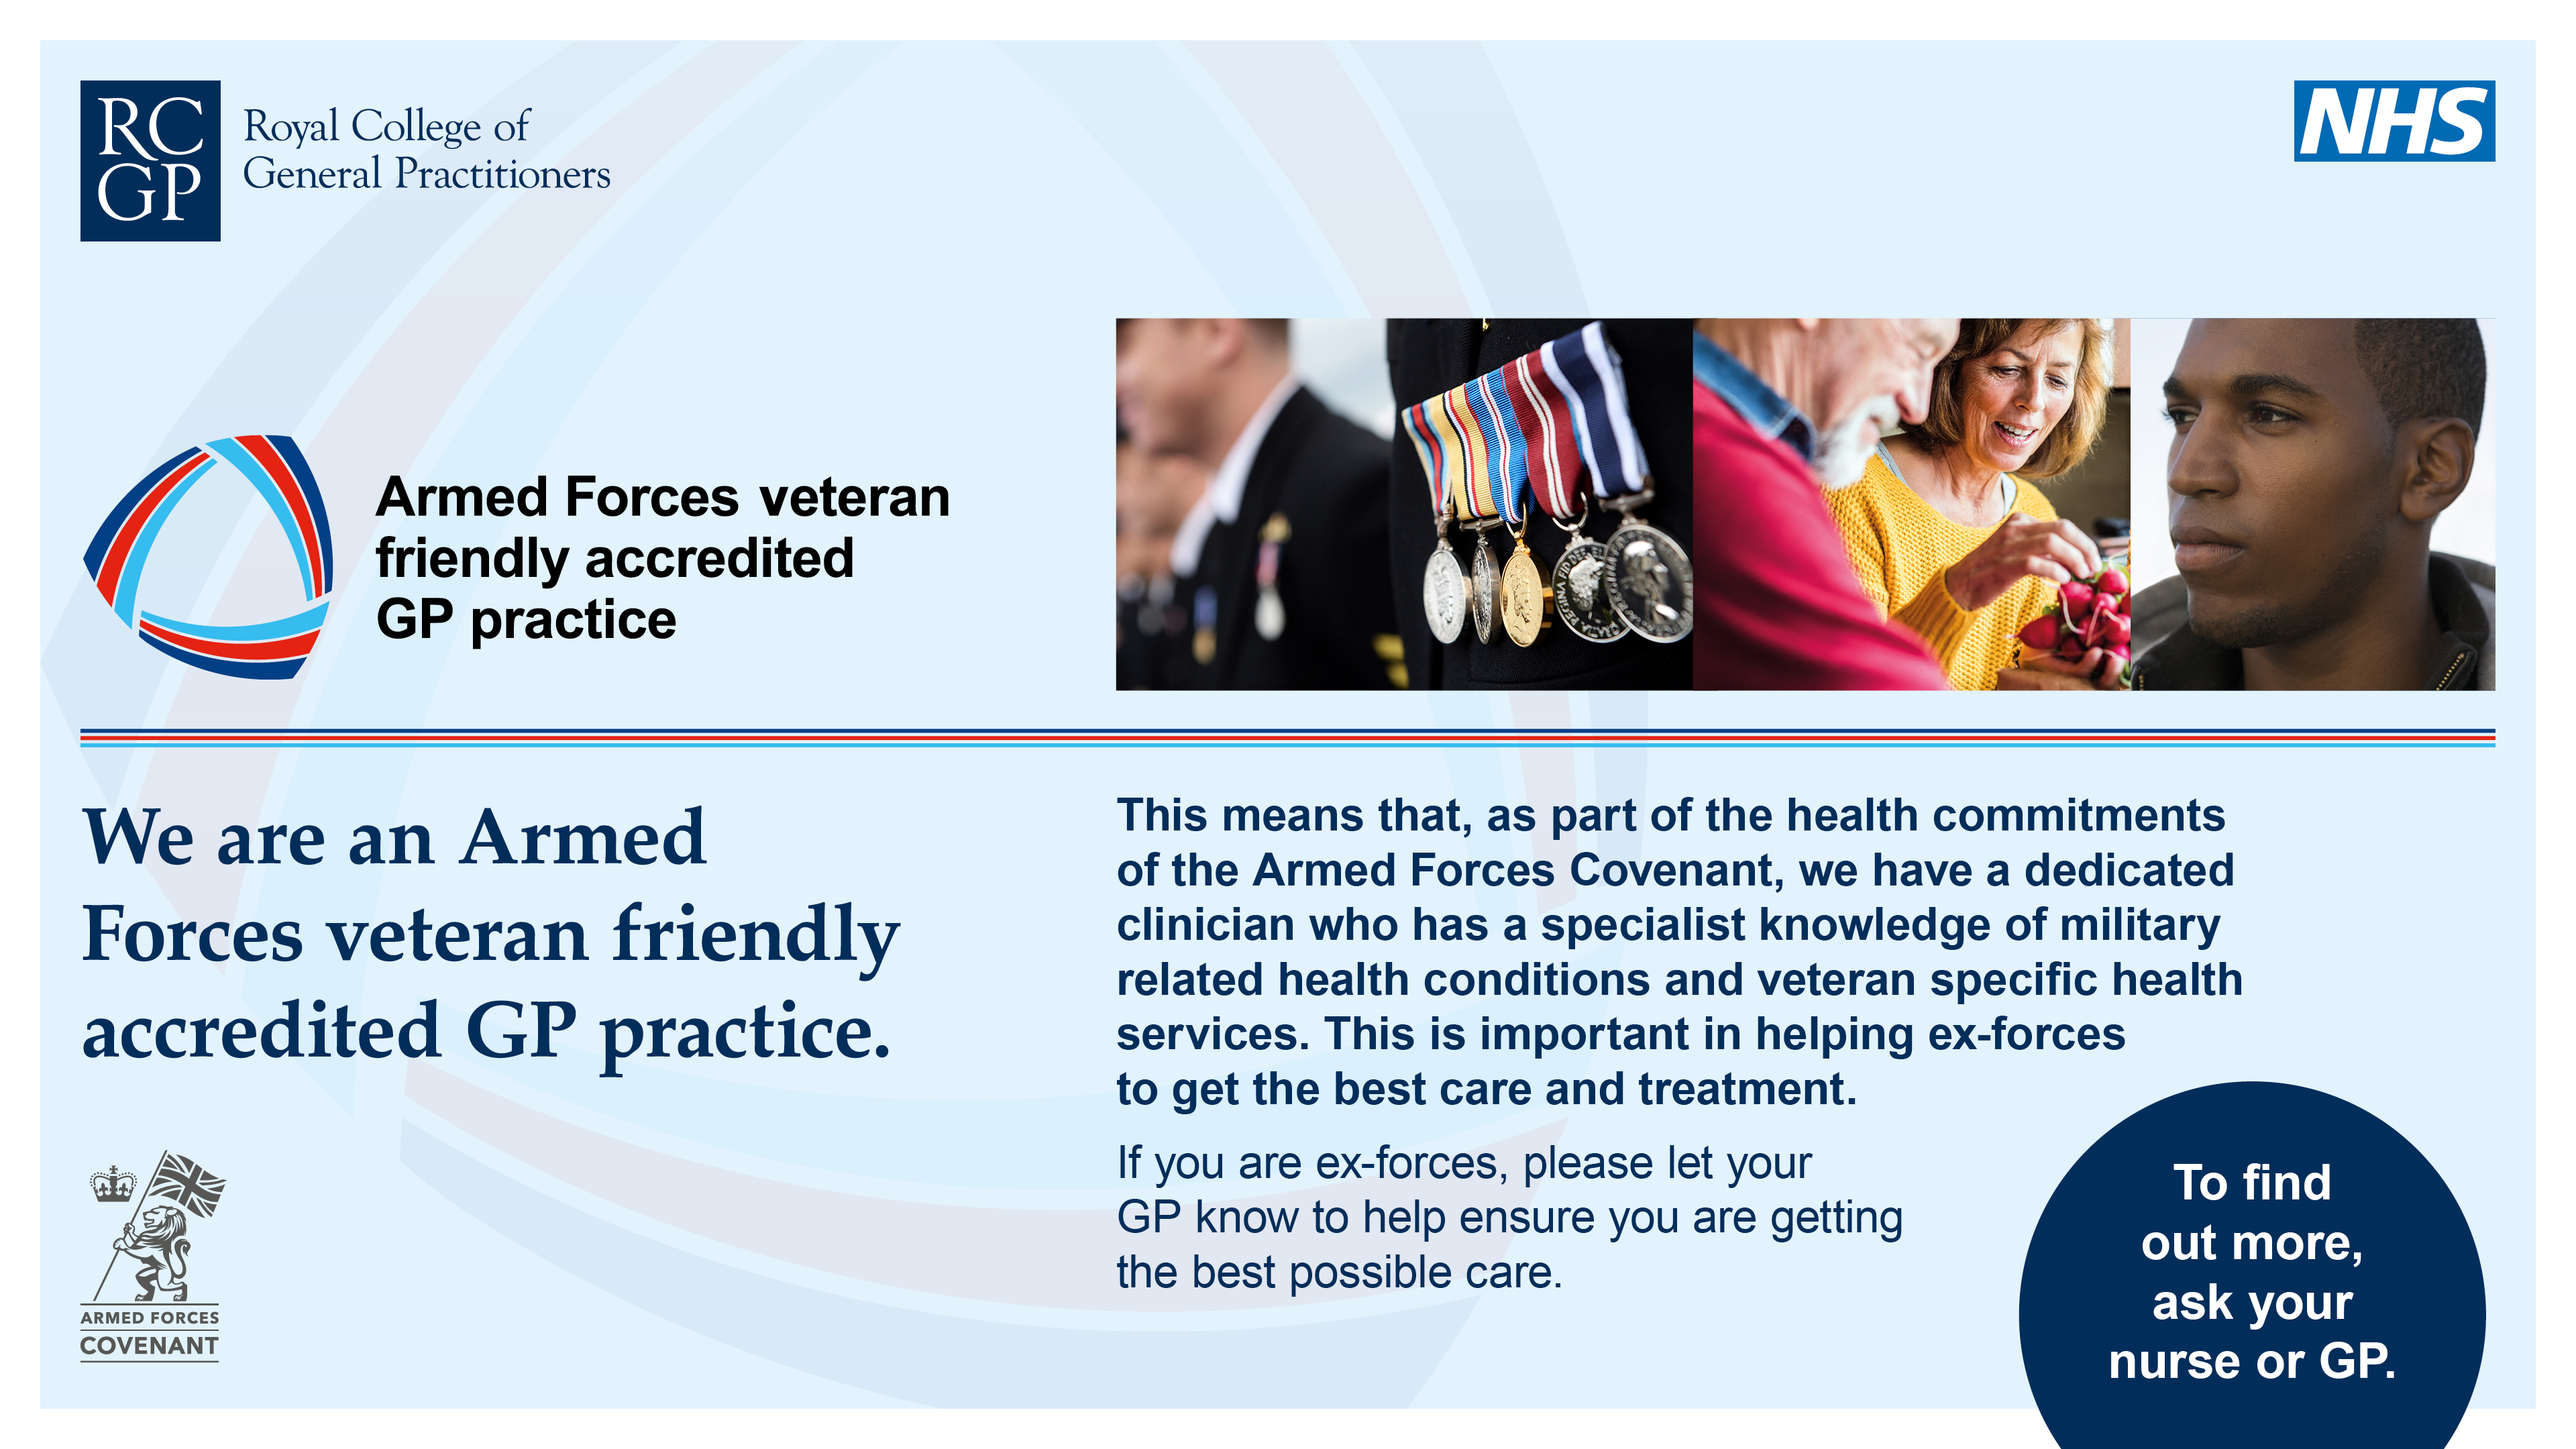 We are an Armed Forces Veteran Friendly Accredited practice